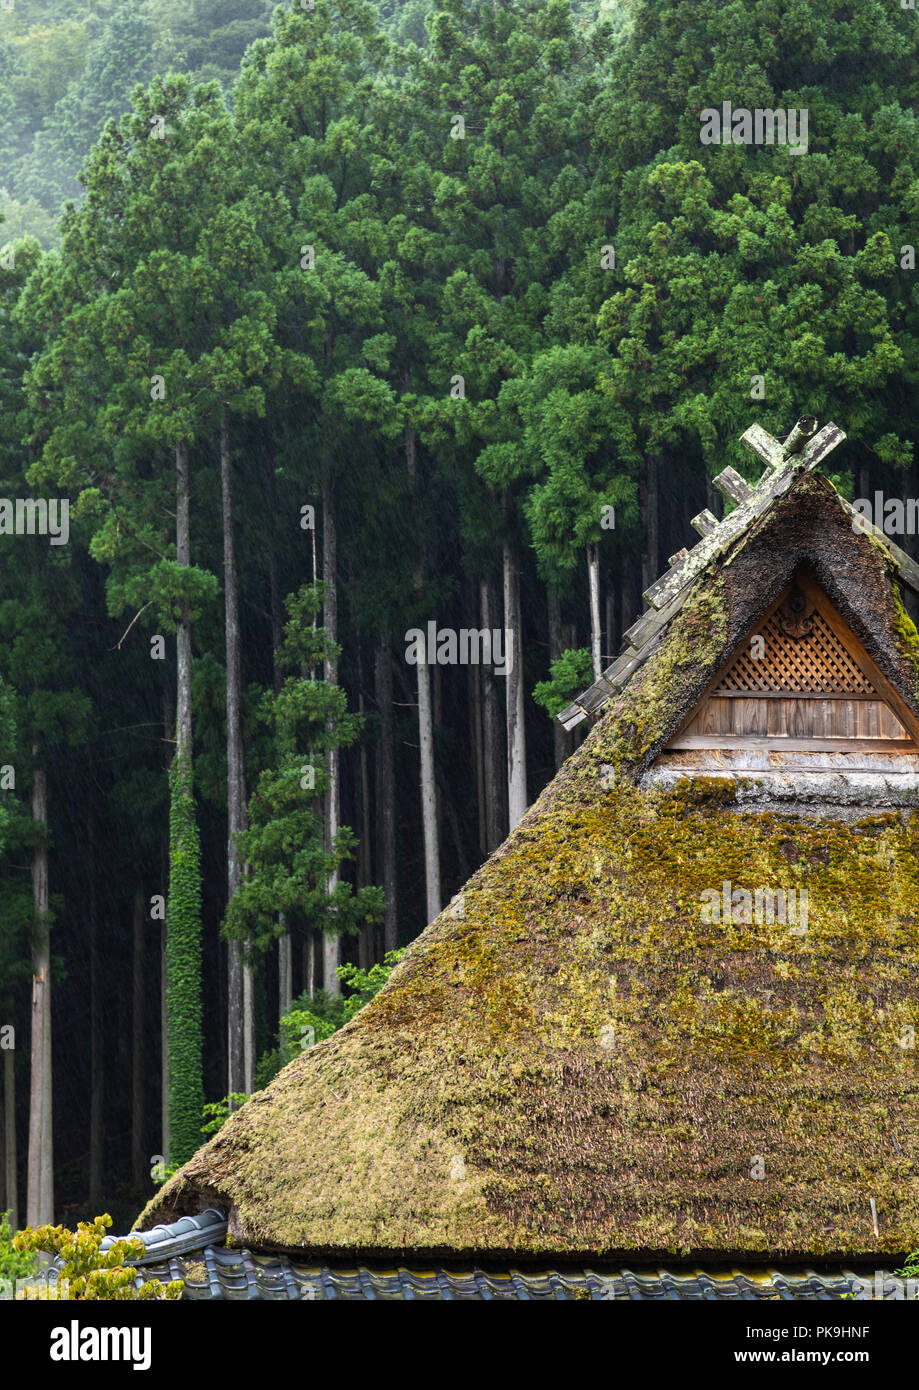 Thatched roofed houses in a traditional village against a forest, Kyoto Prefecture, Miyama, Japan - Stock Image